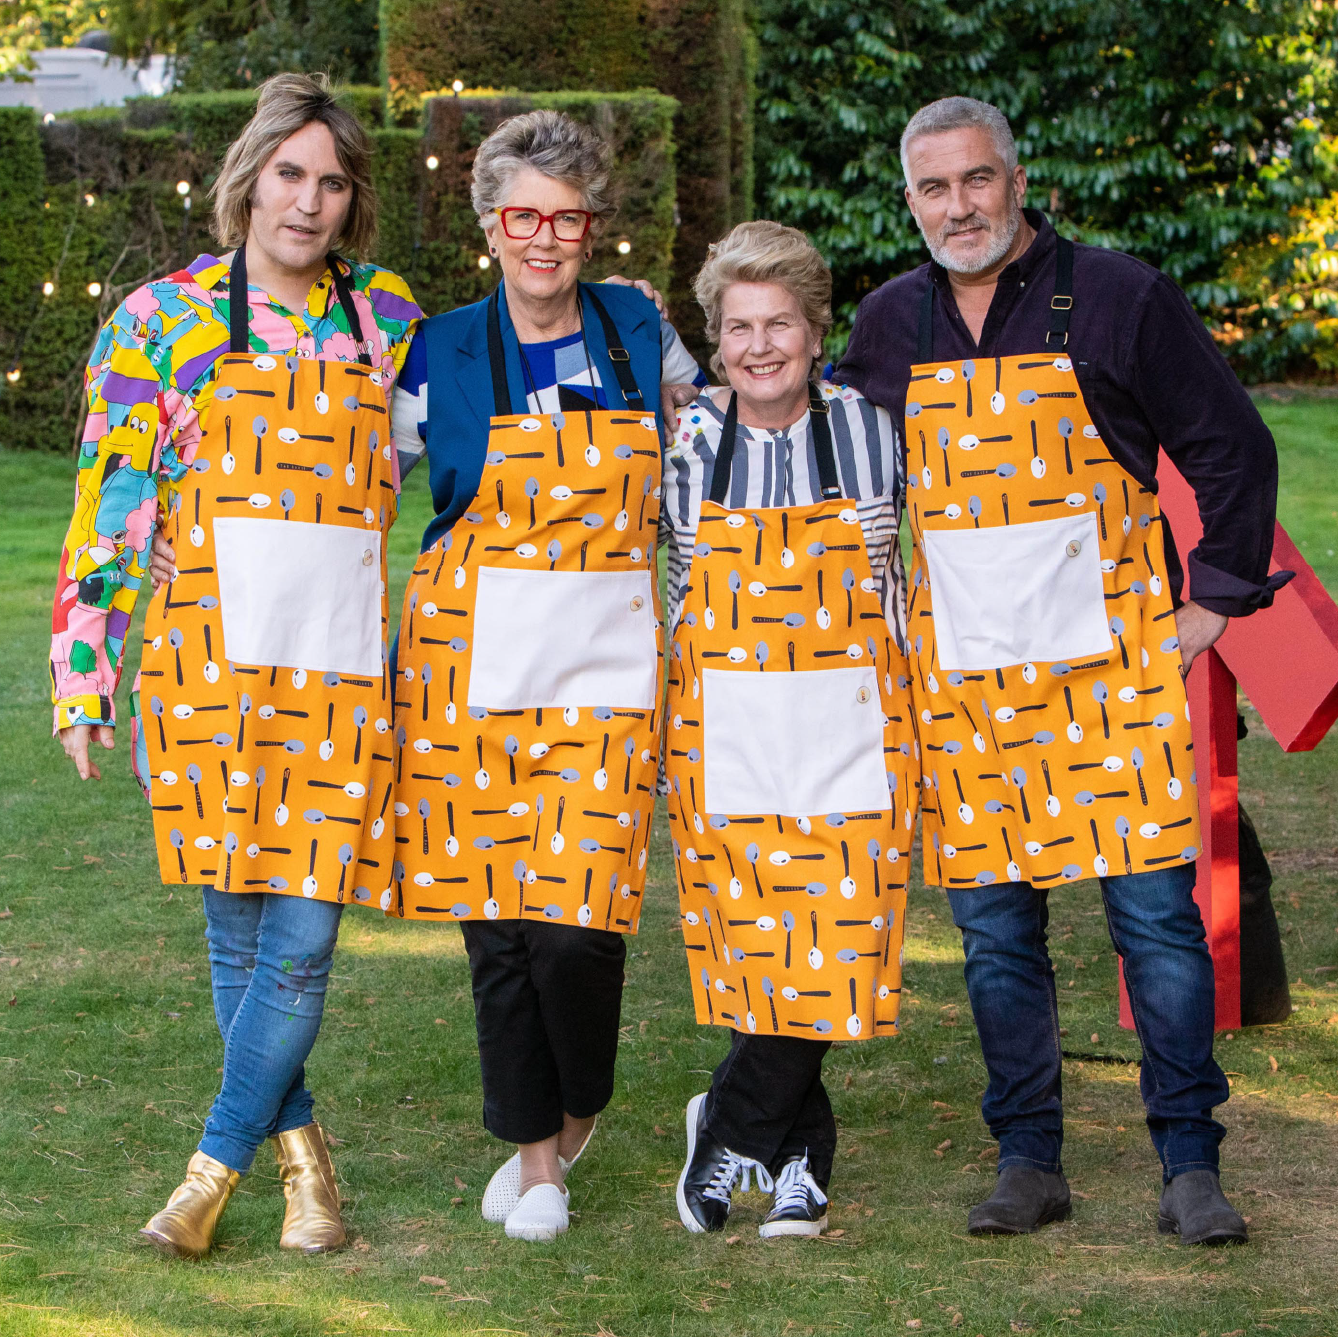 Four judges wearing Star Baker apron, in garden.